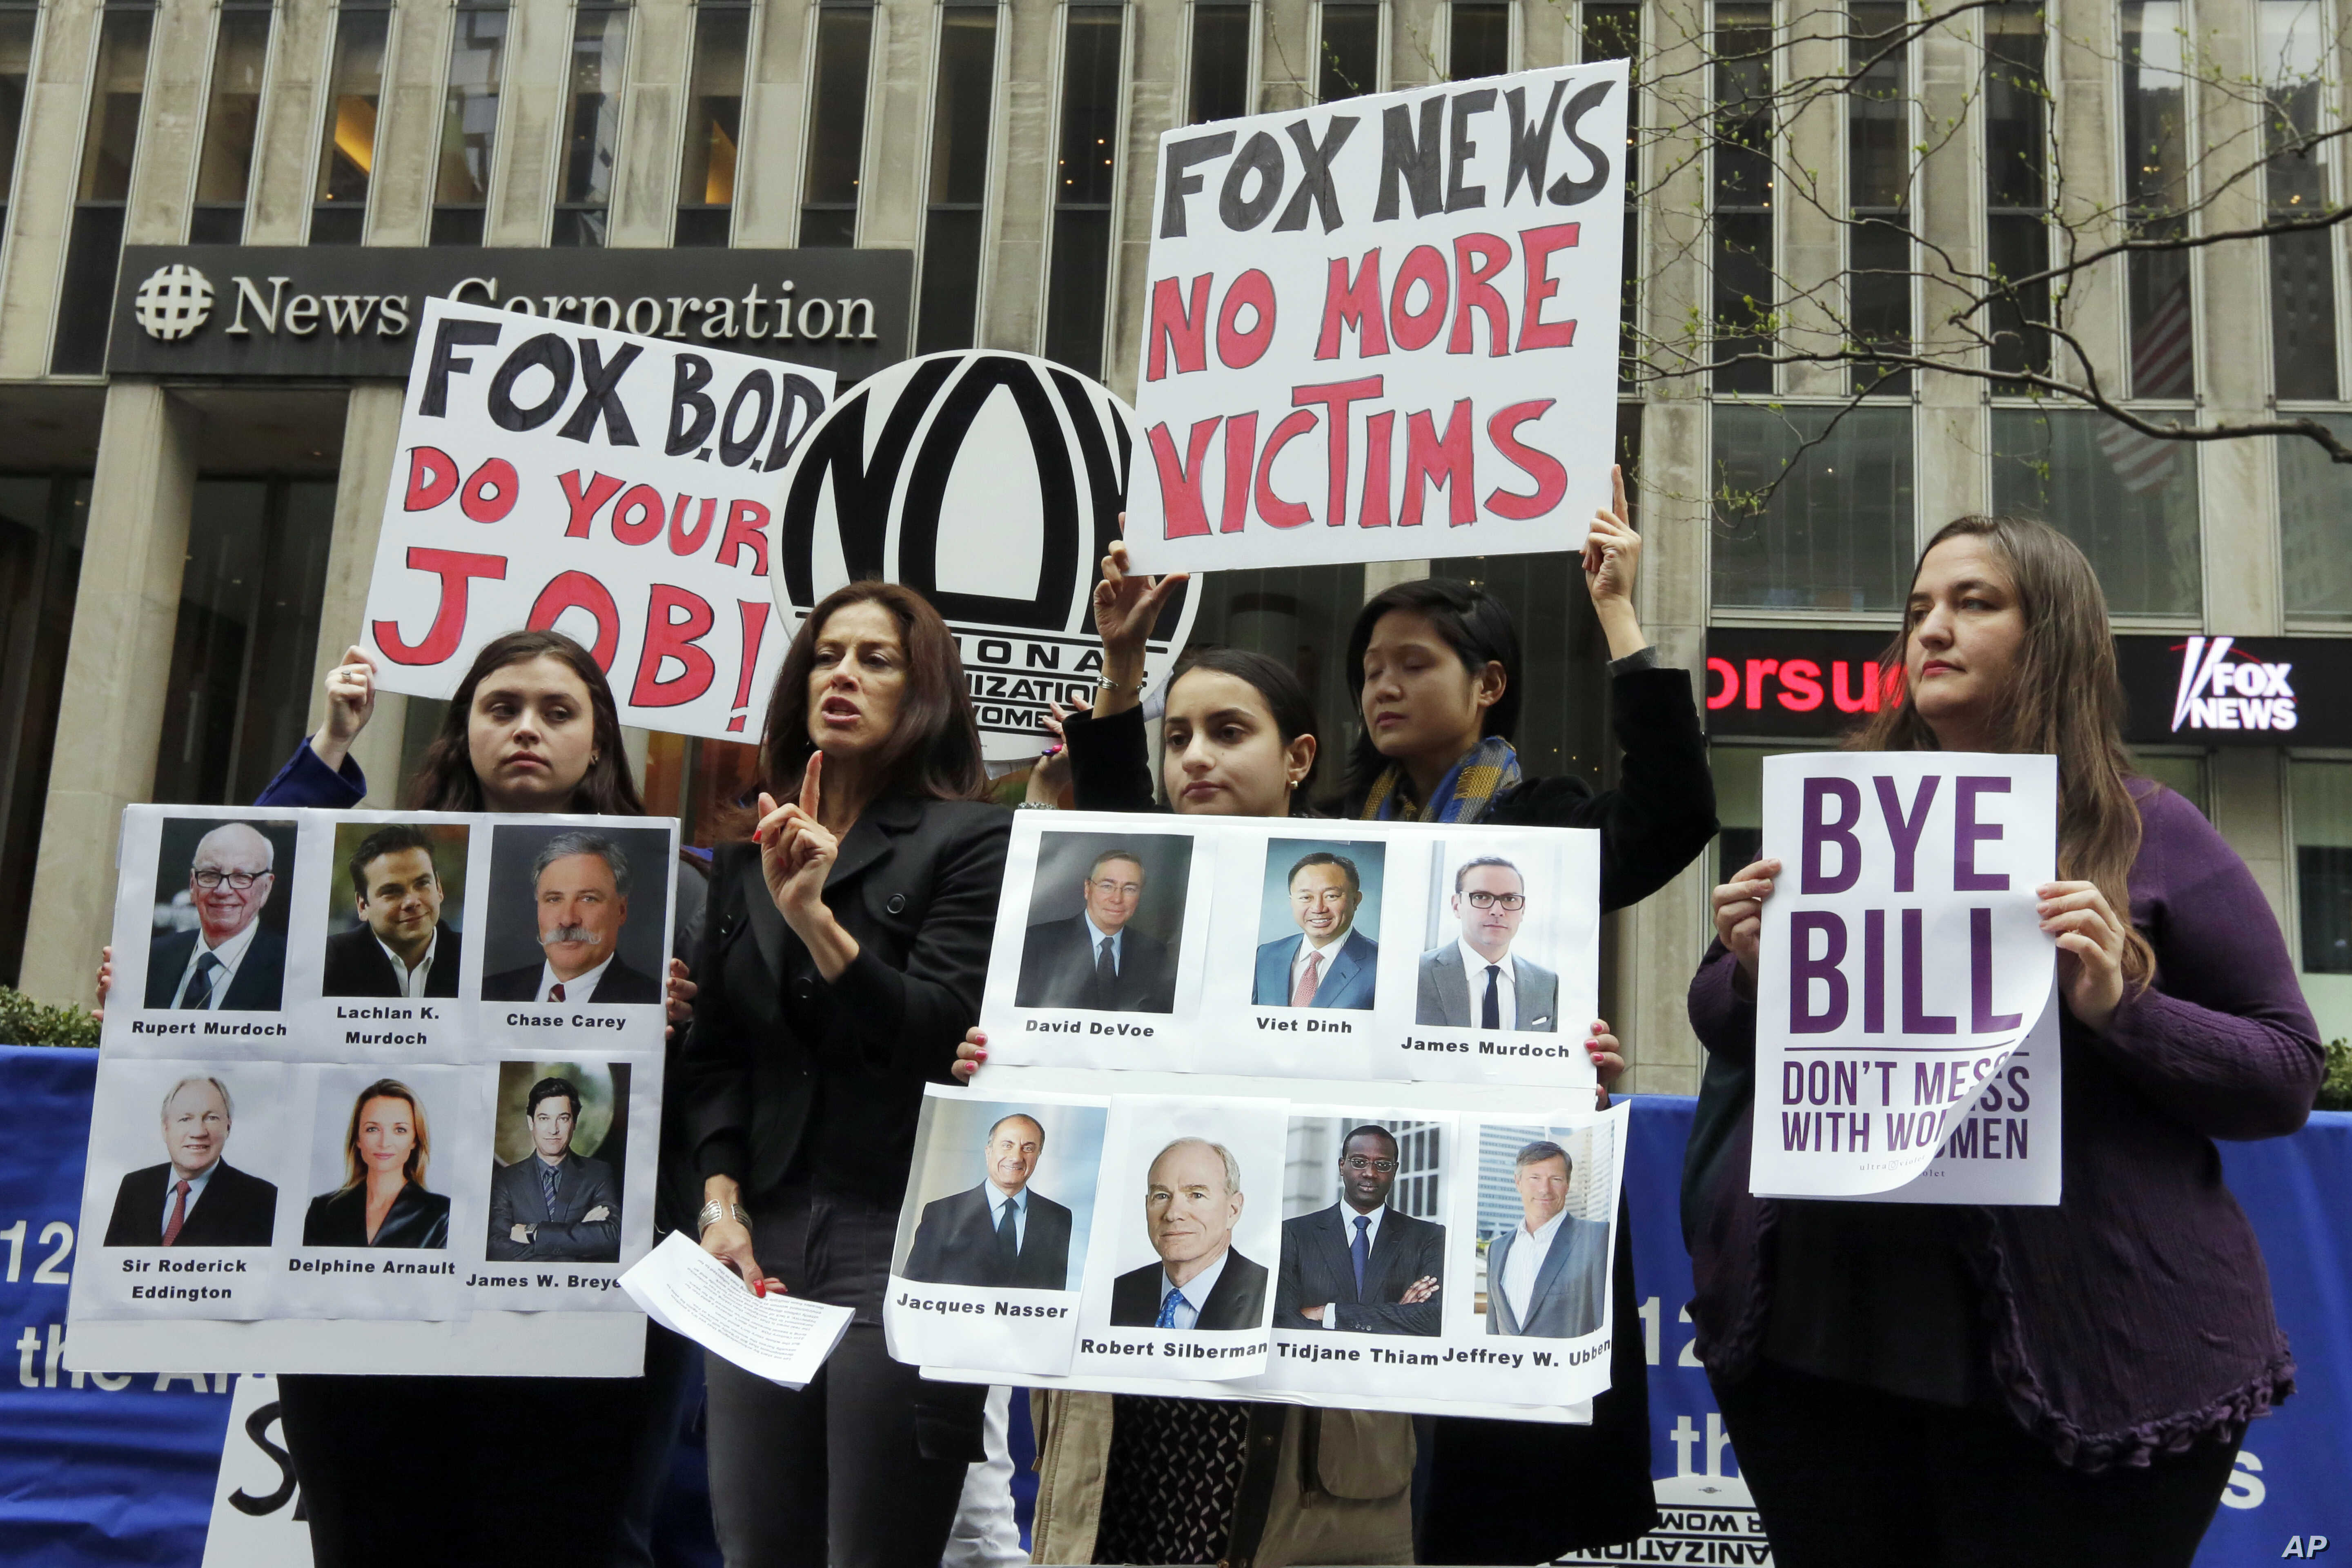 Sonia Ossorio, second left, president of the National Organization for Women New York, speaks outside the News Corporation headquarters in New York, April 20, 2017, a day after Fox News Channel's Bill O'Reilly was fired.